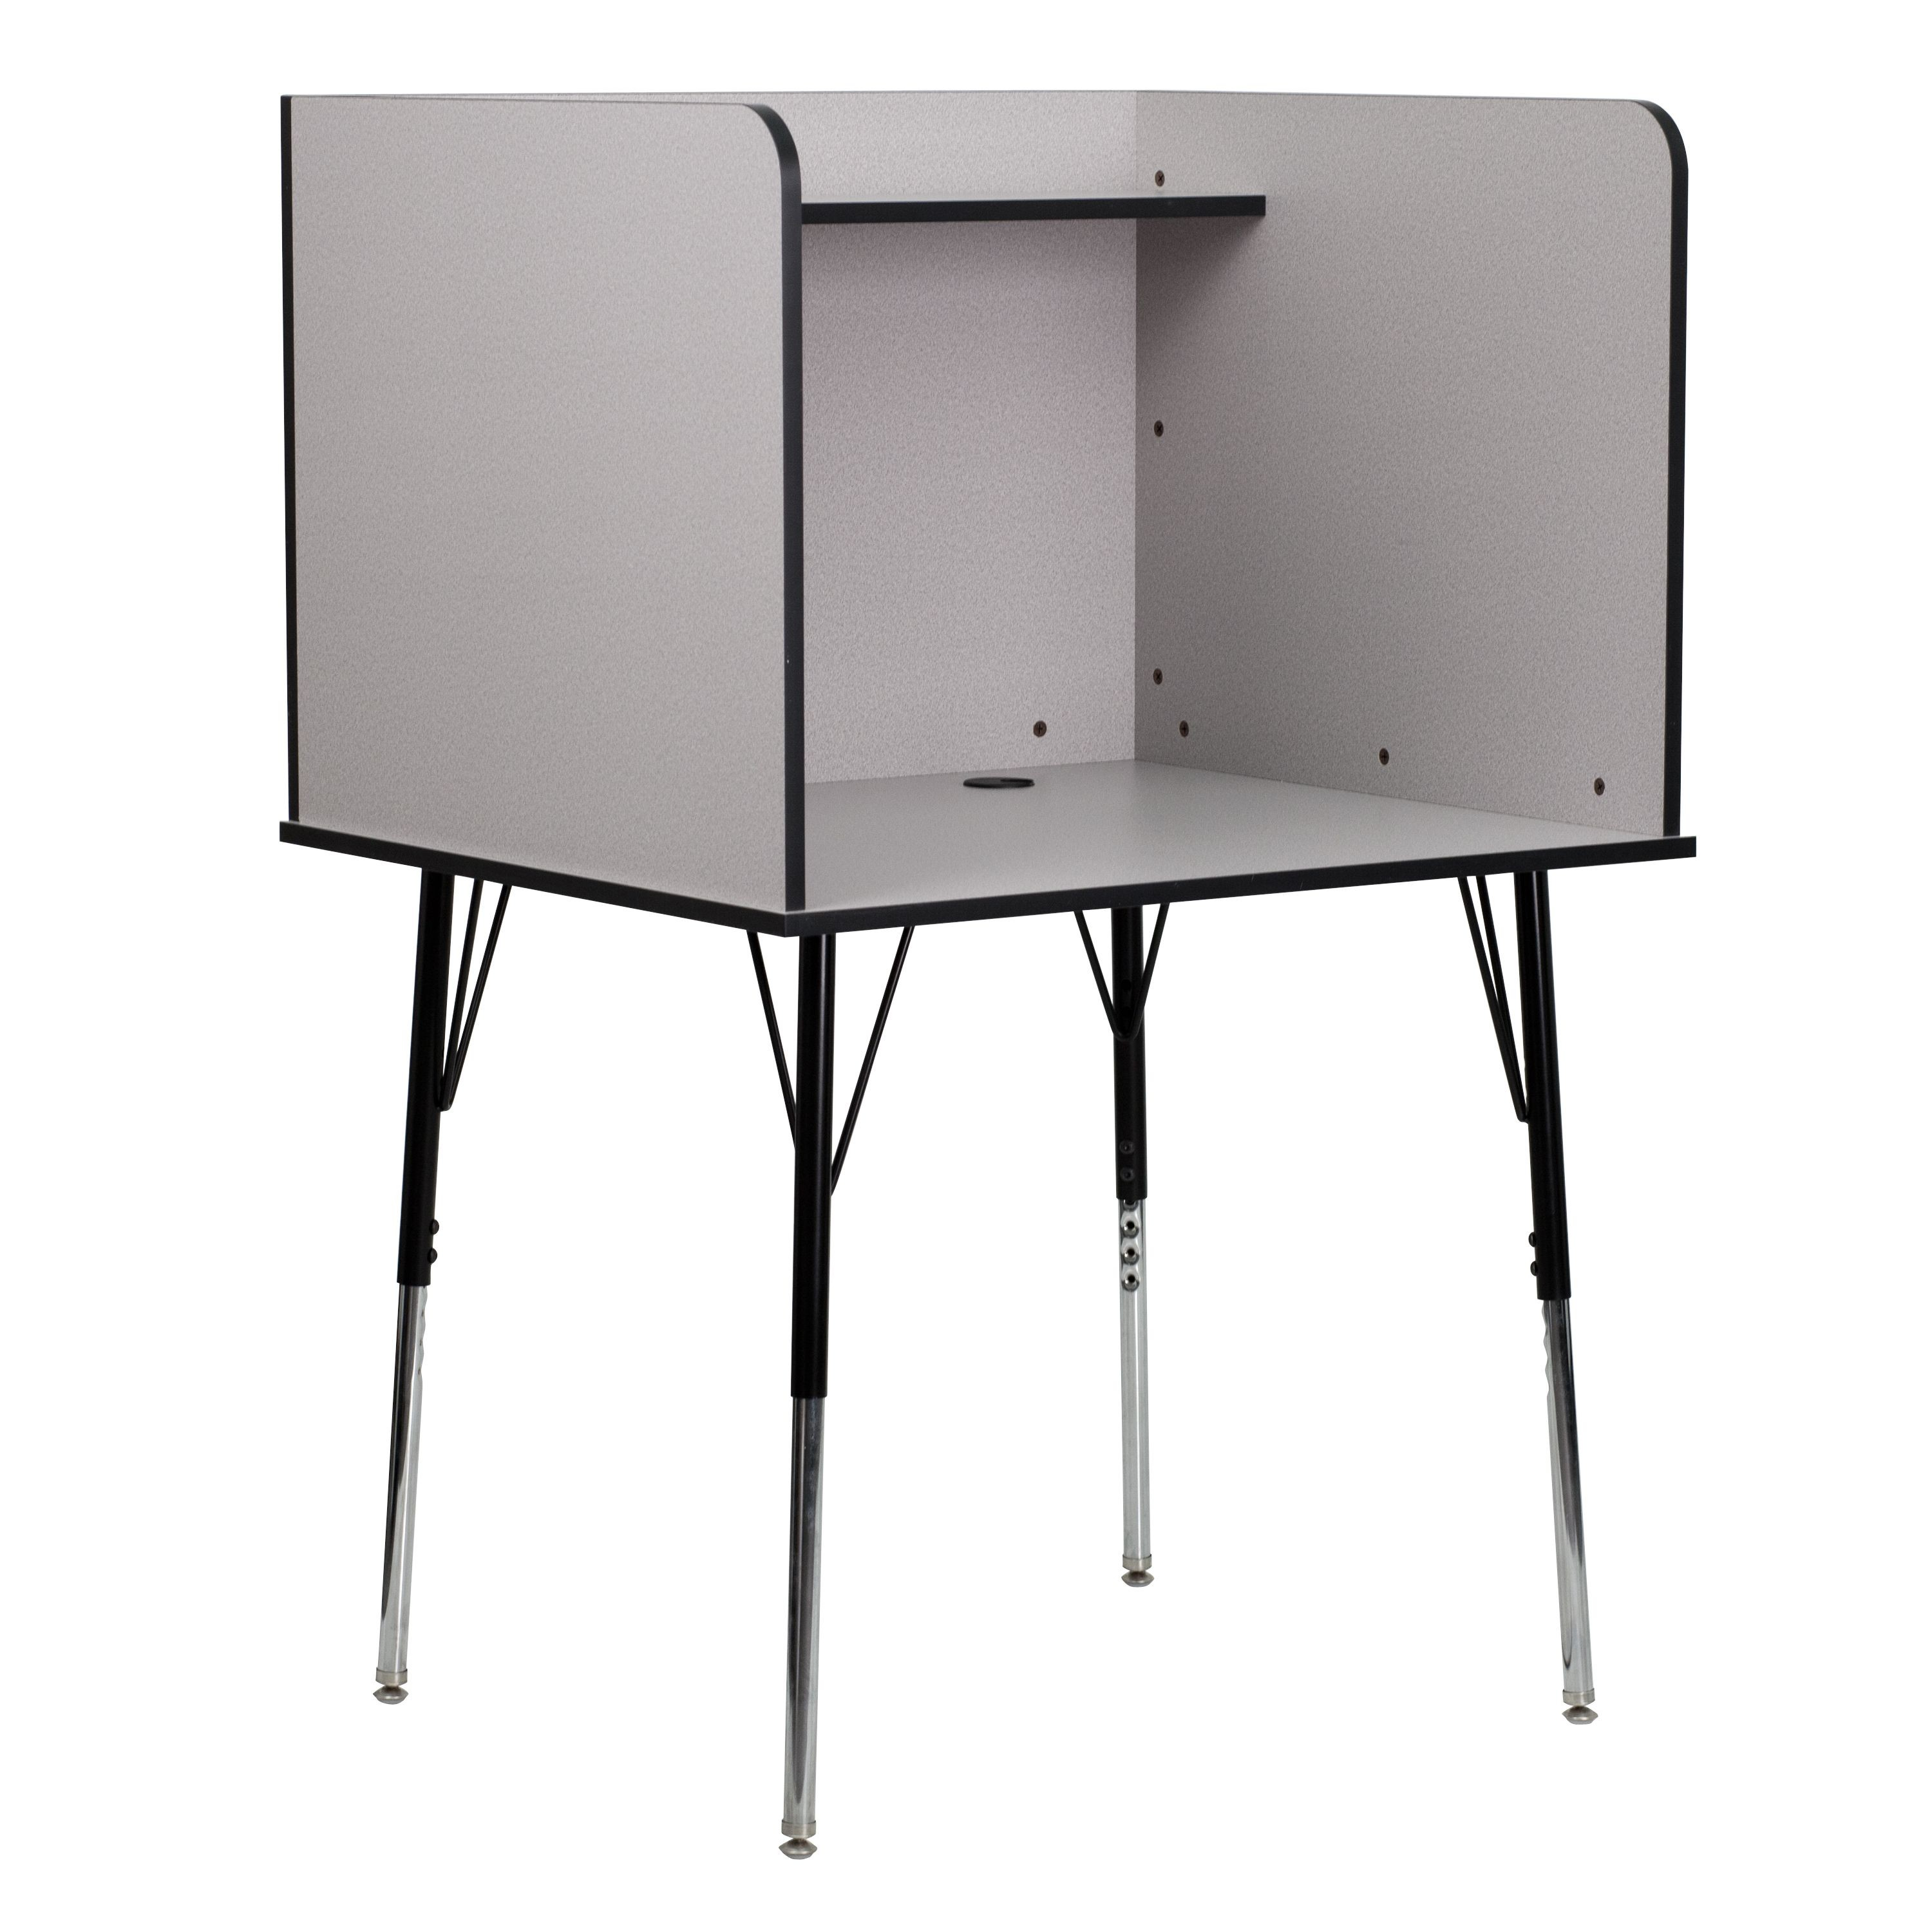 Flash Furniture MT-M6221-GREY-GG Study Carrel with Adjustable Legs and Top Shelf/ Nebula Grey Finish